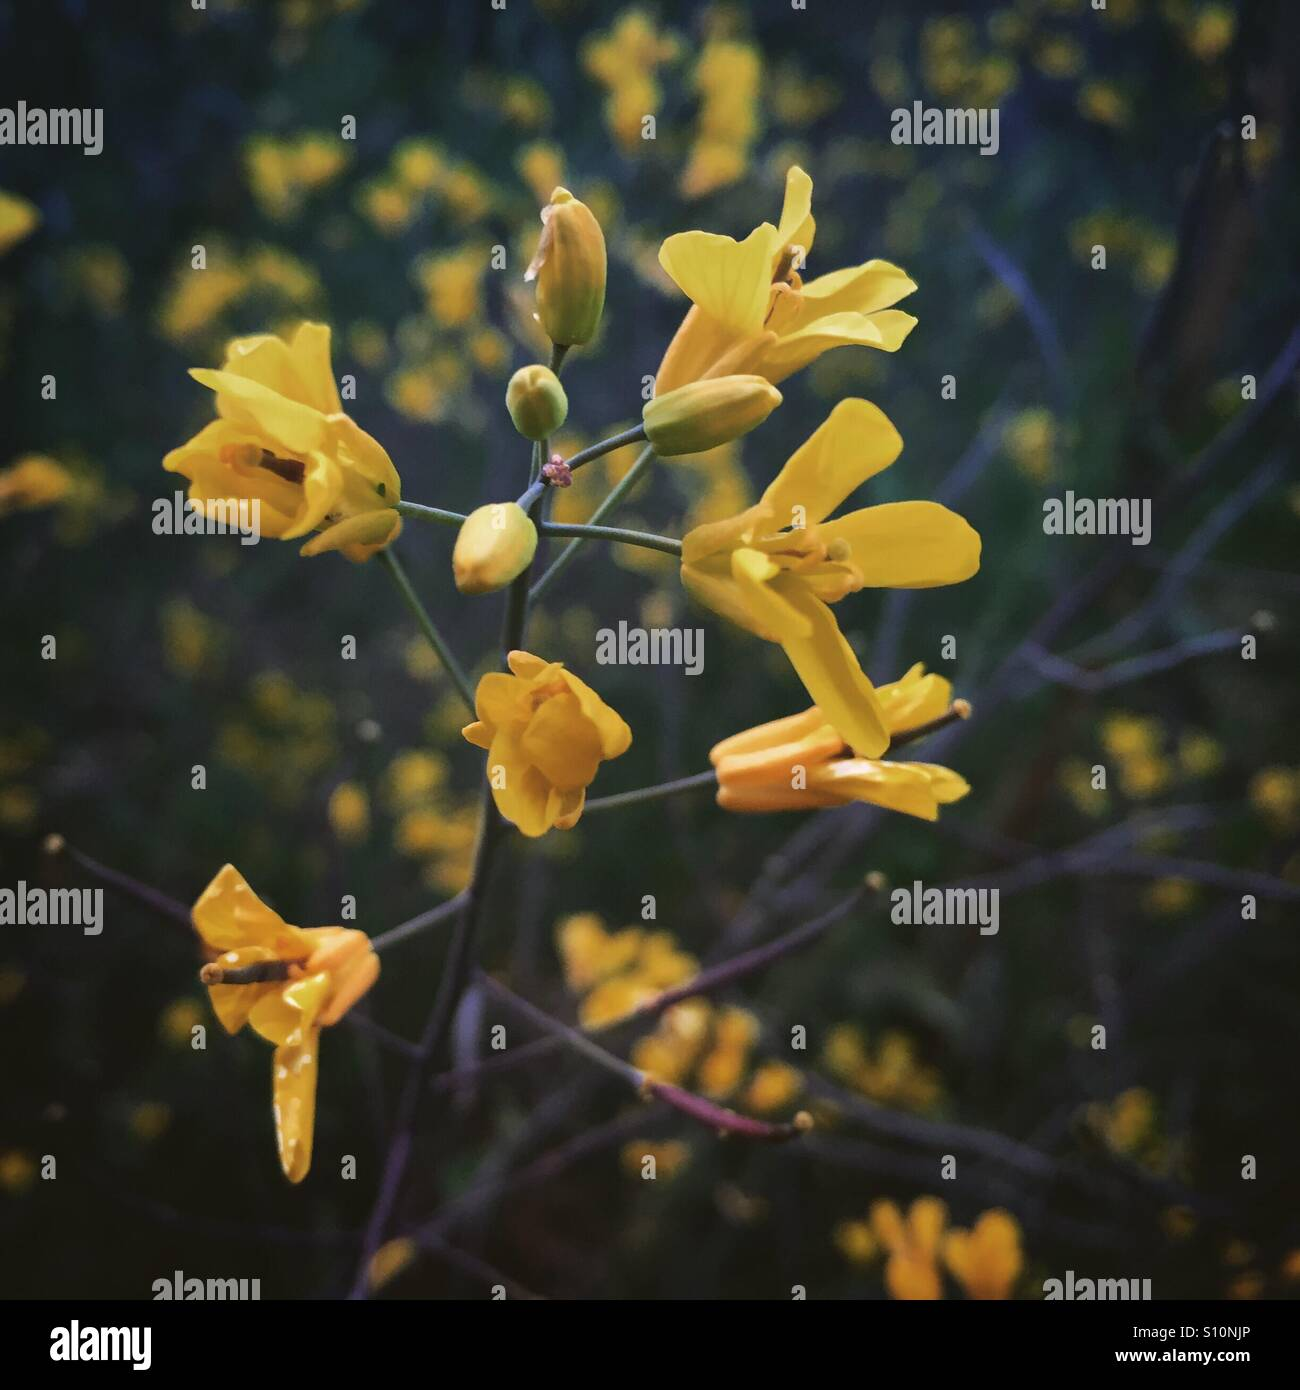 Close Up Of Yellow Flowers On A Kale Plant Gone To Seed Growing In A